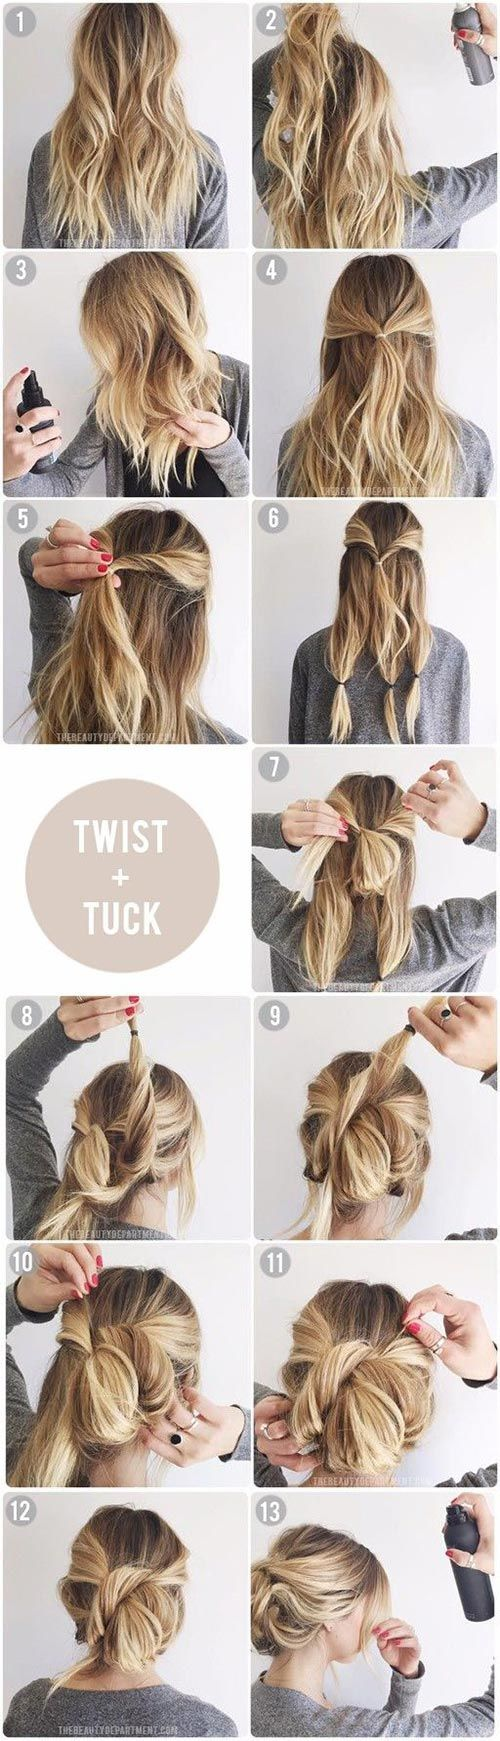 Easy and fun messy updo tutorial #hair #hairstyle #womentriangle